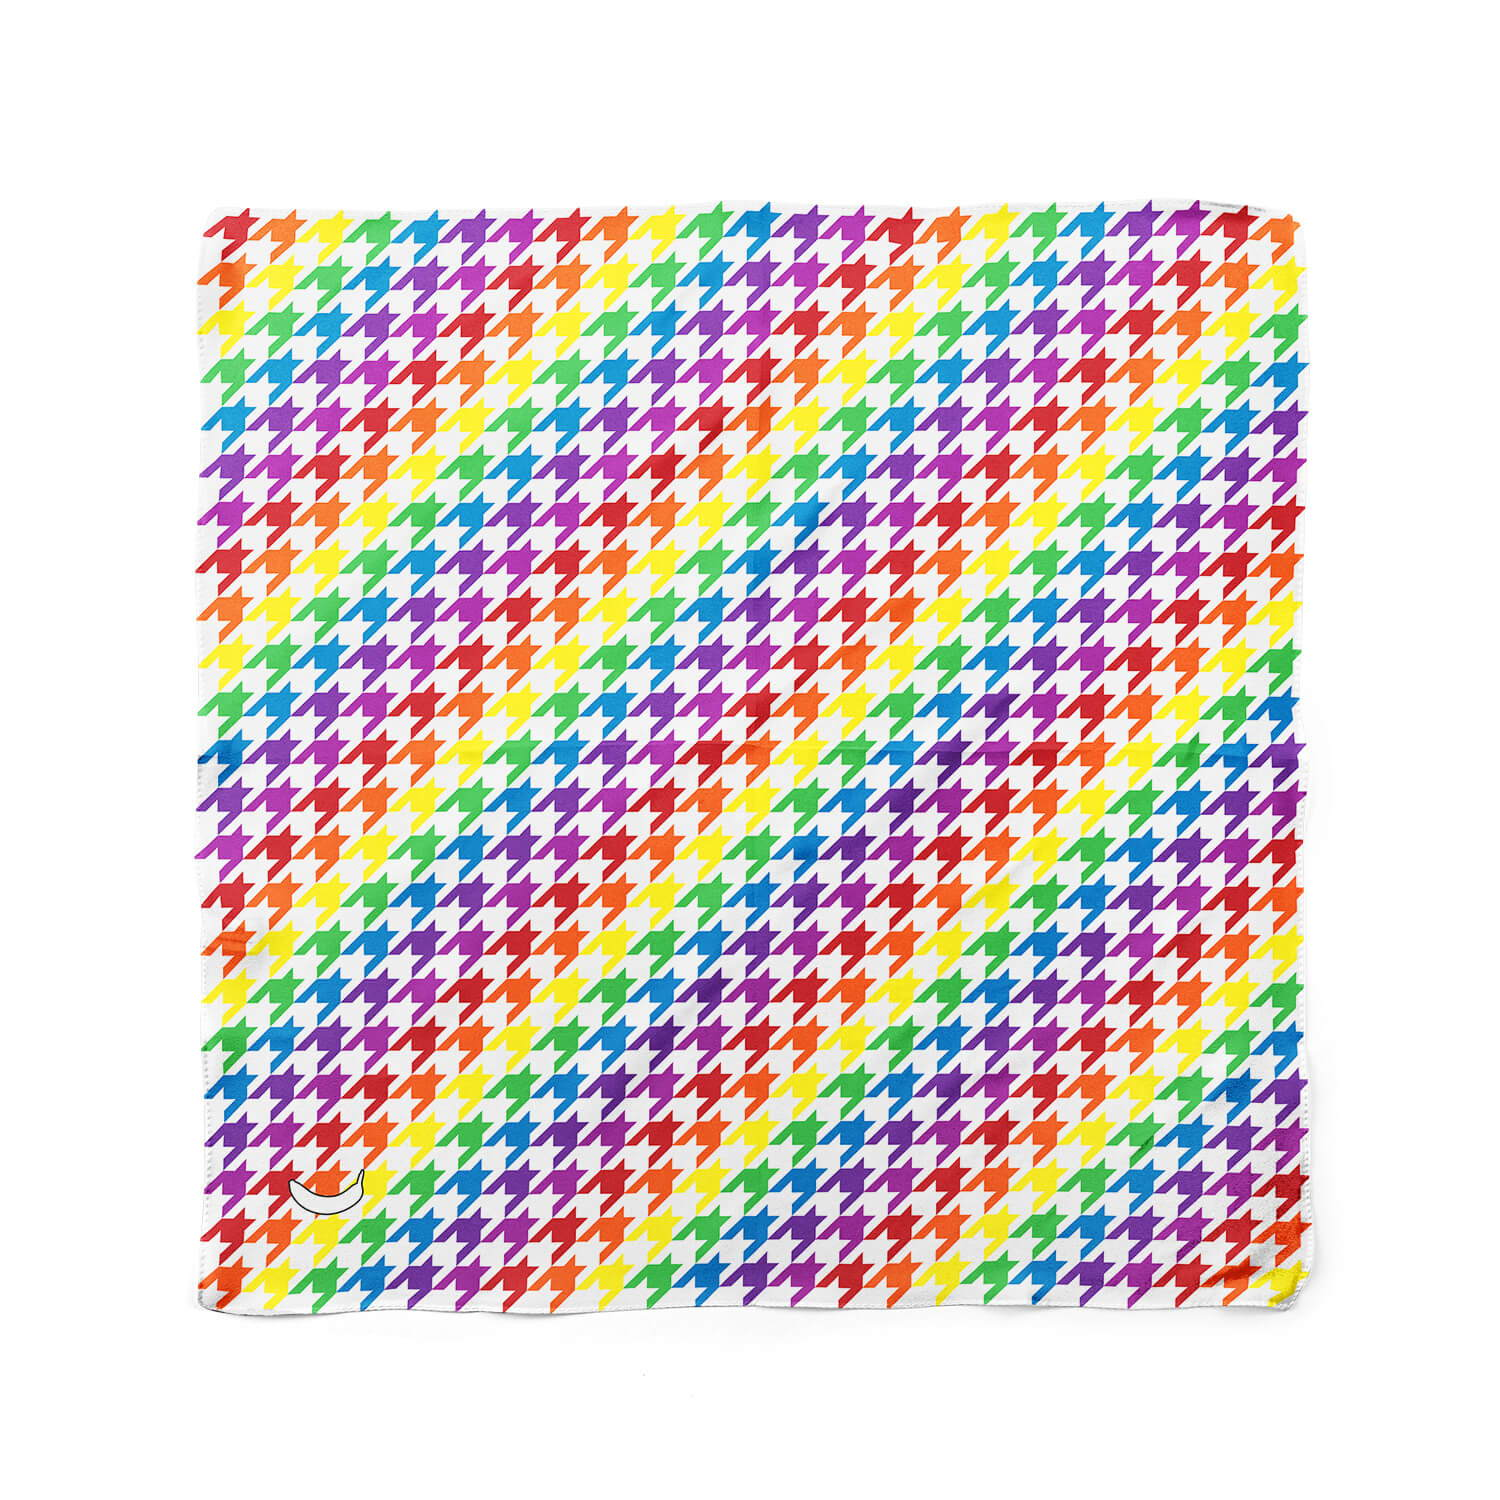 Banana Bandanas colorful dog bandanas Rainbow Houndstooth dog bandana